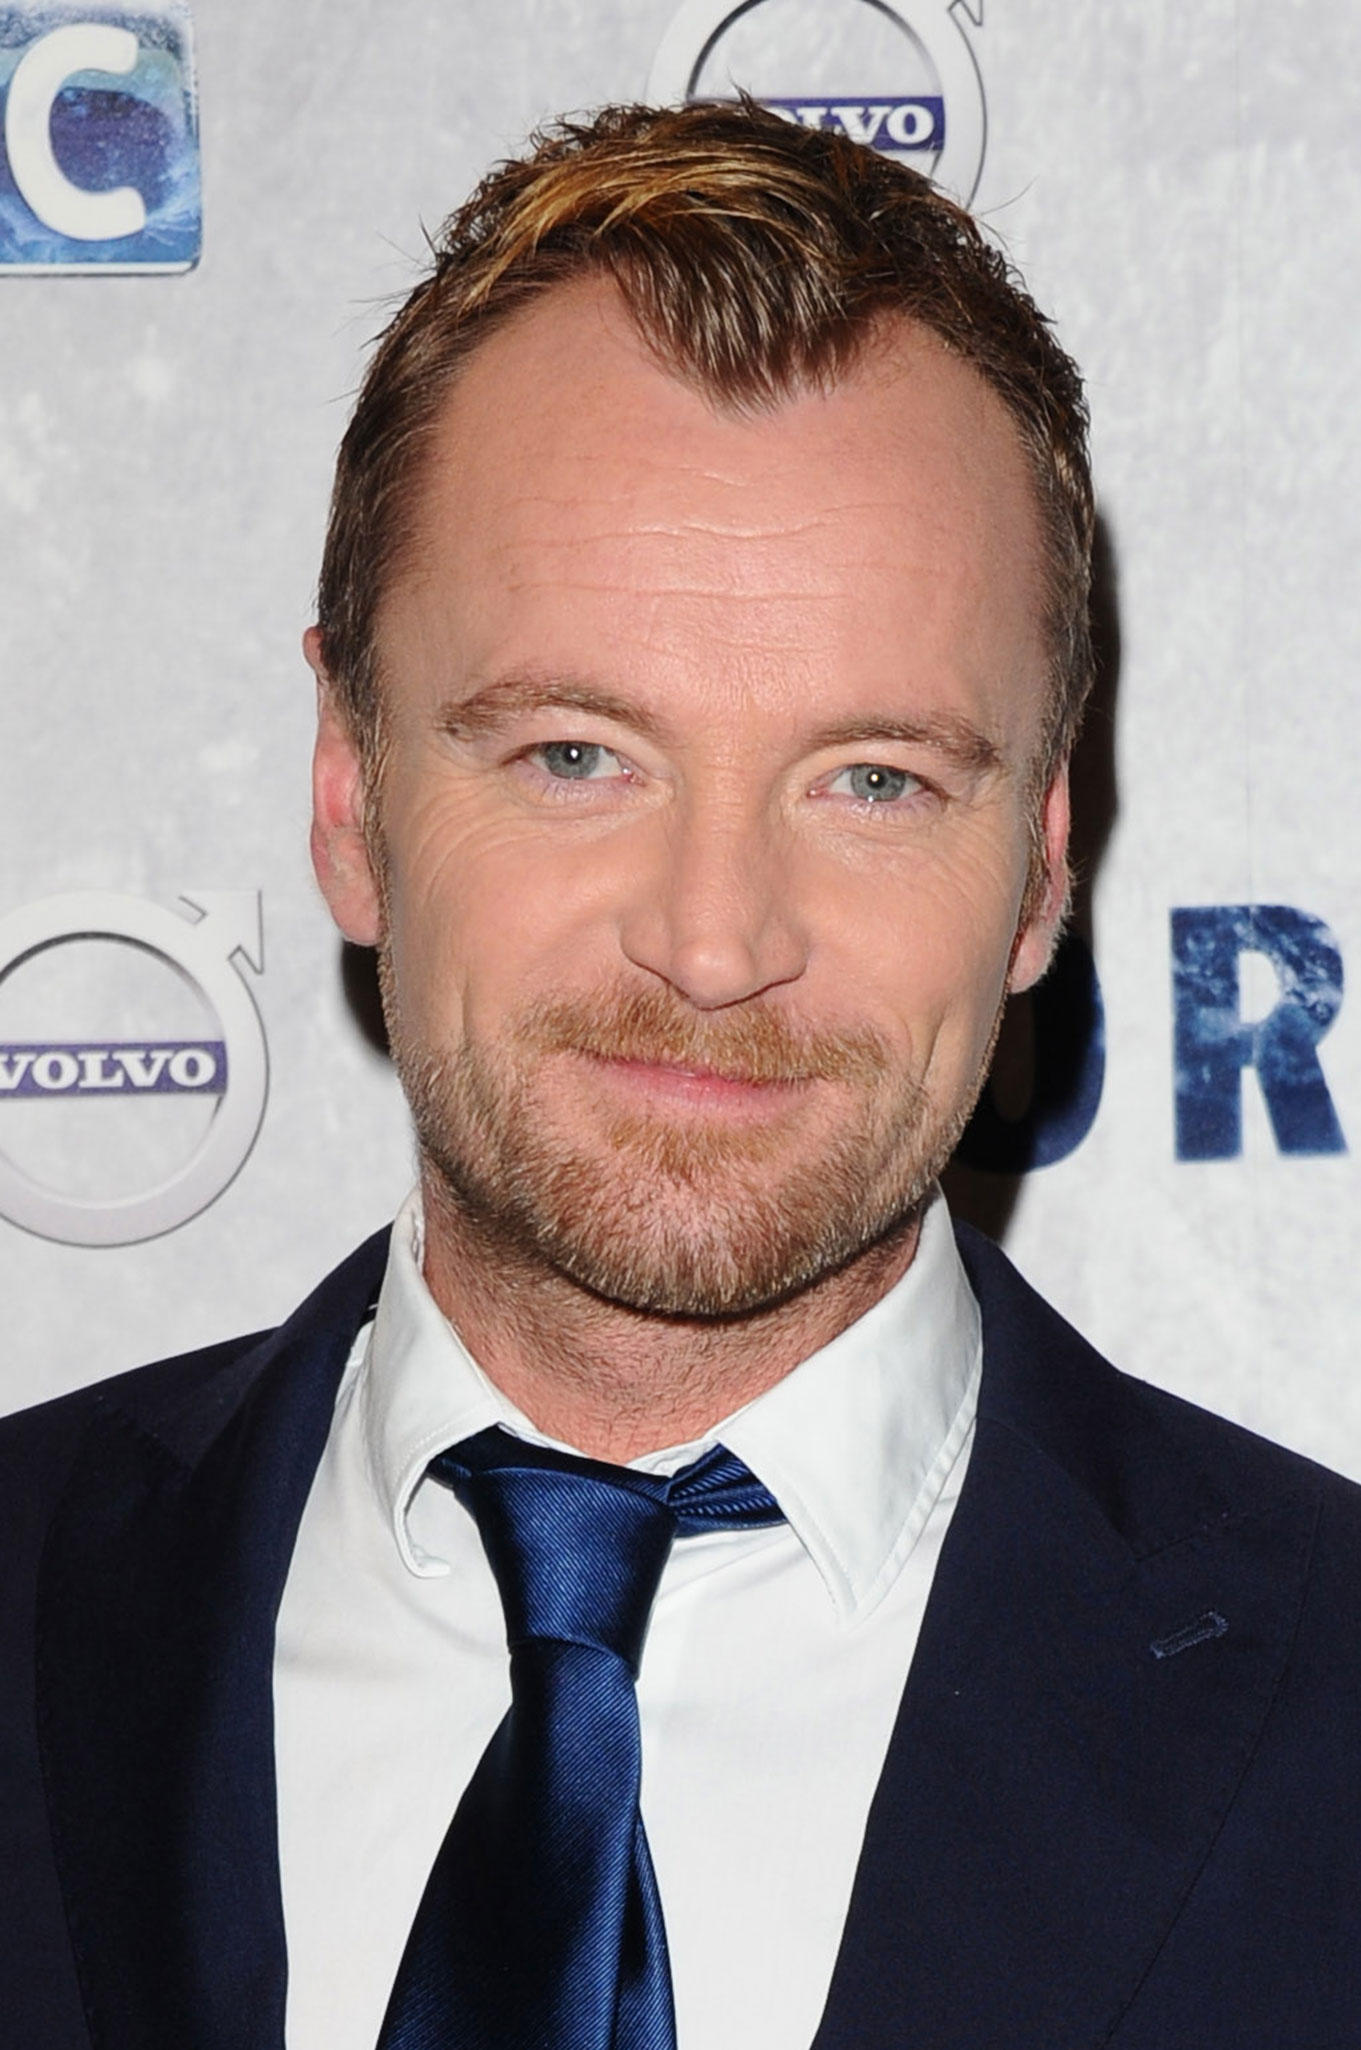 Richard Dormer at the UK premiere of